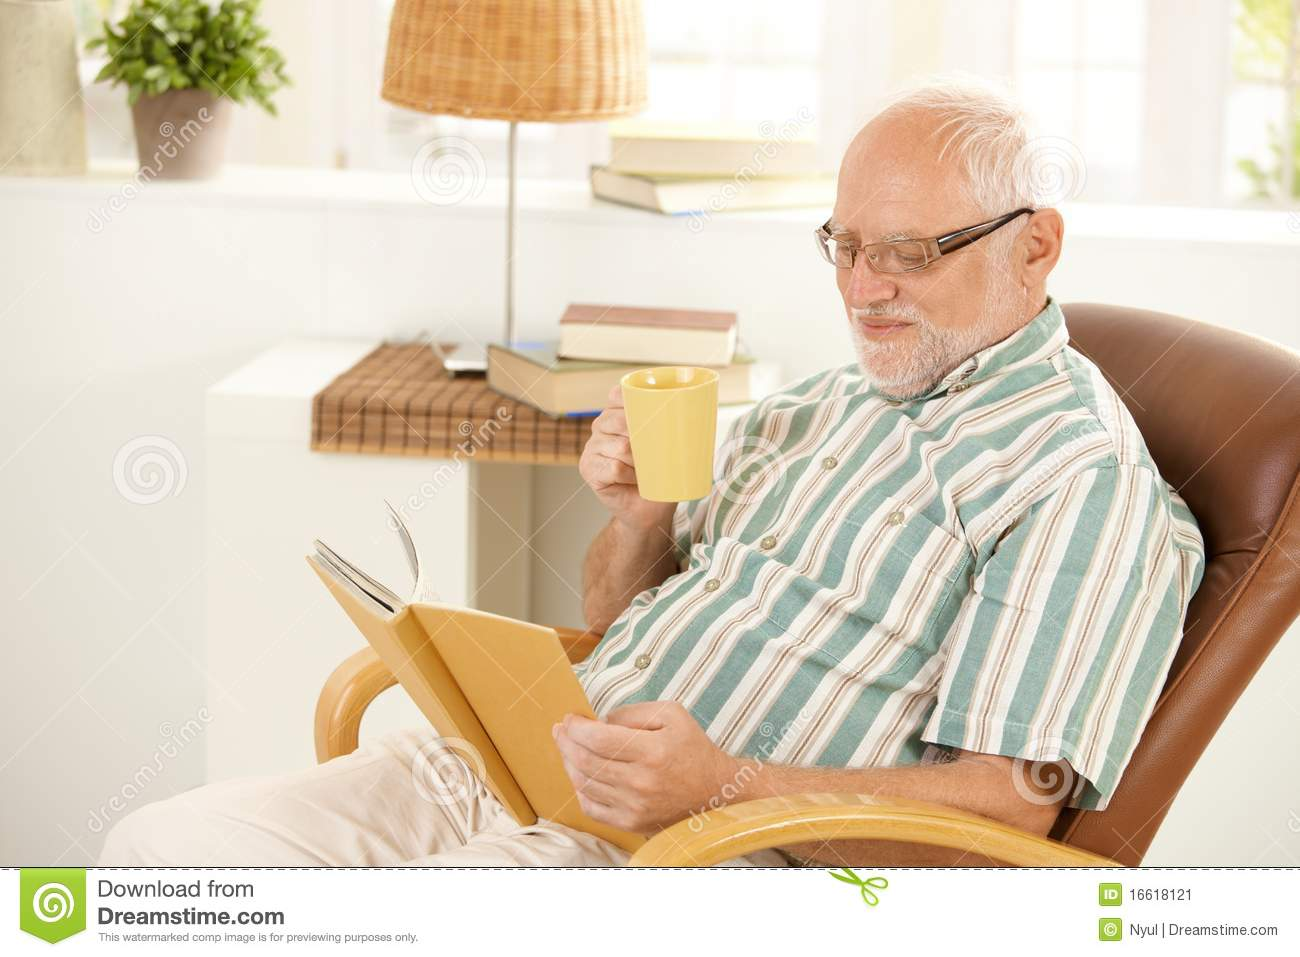 Smiling Senior Relaxing At Home With Book And Tea Stock